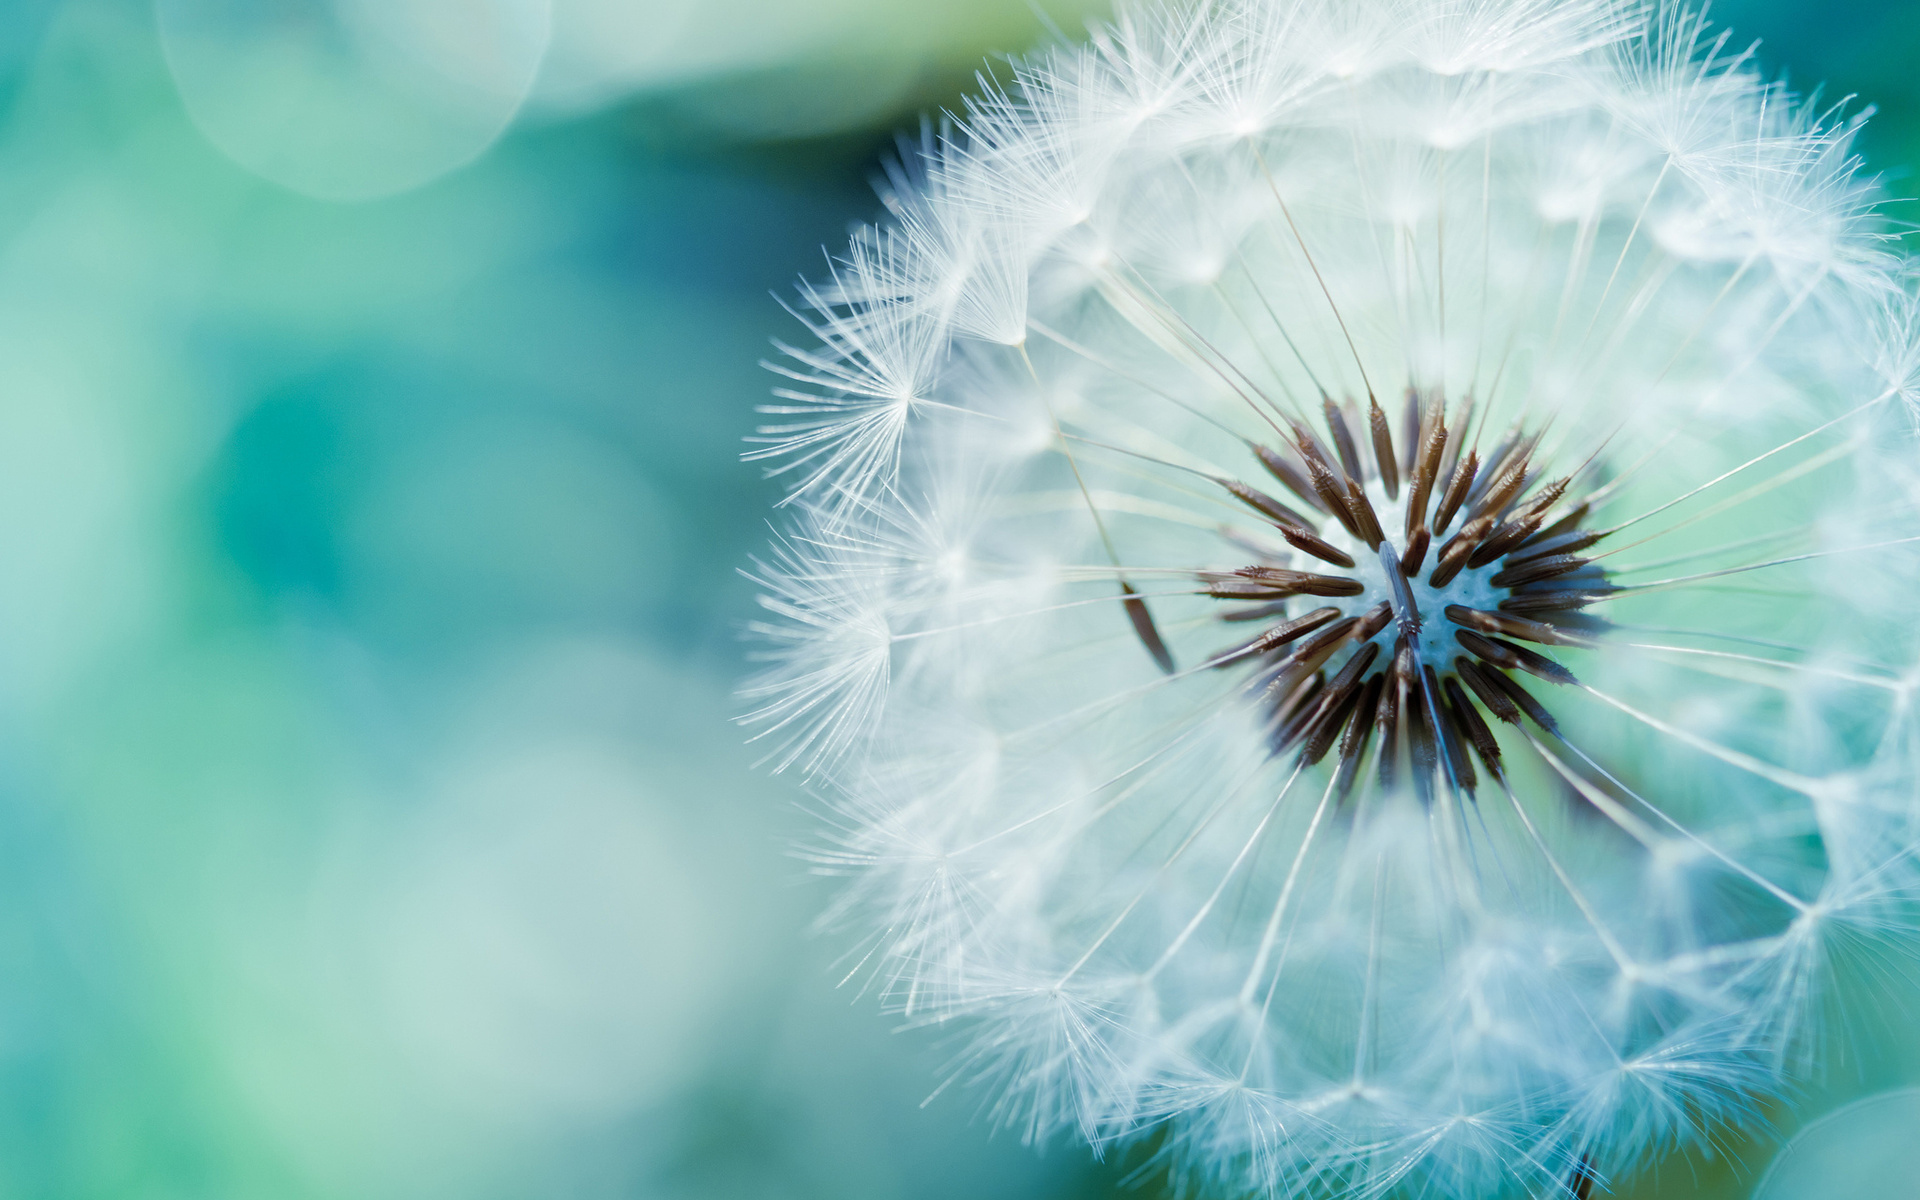 Dandelion Wallpaper HD